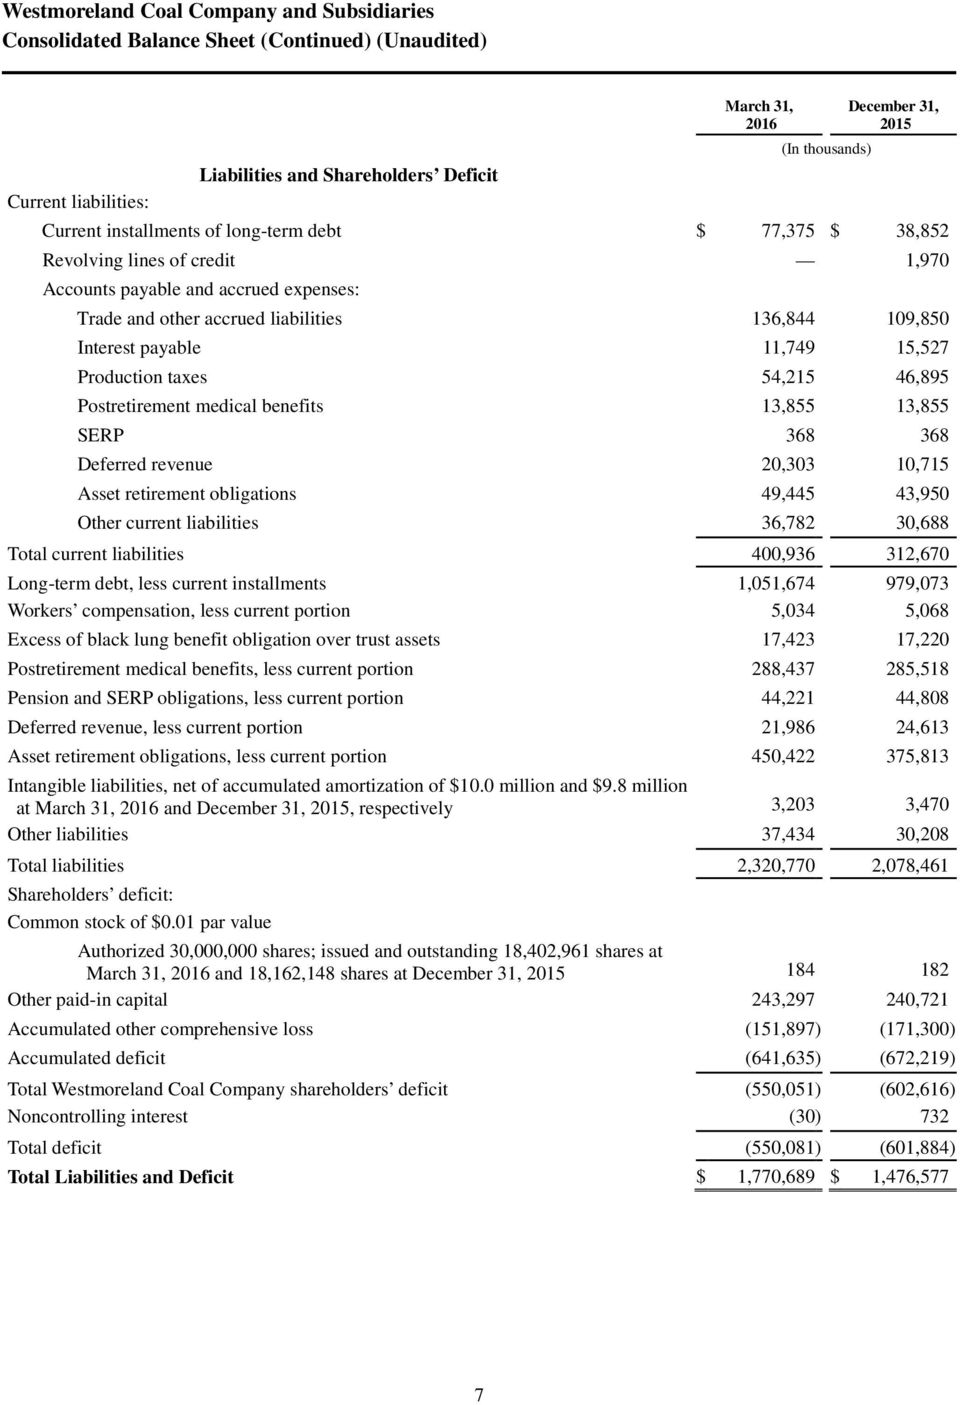 medical benefits 13,855 13,855 SERP 368 368 Deferred revenue 20,303 10,715 Asset retirement obligations 49,445 43,950 Other current liabilities 36,782 30,688 Total current liabilities 400,936 312,670